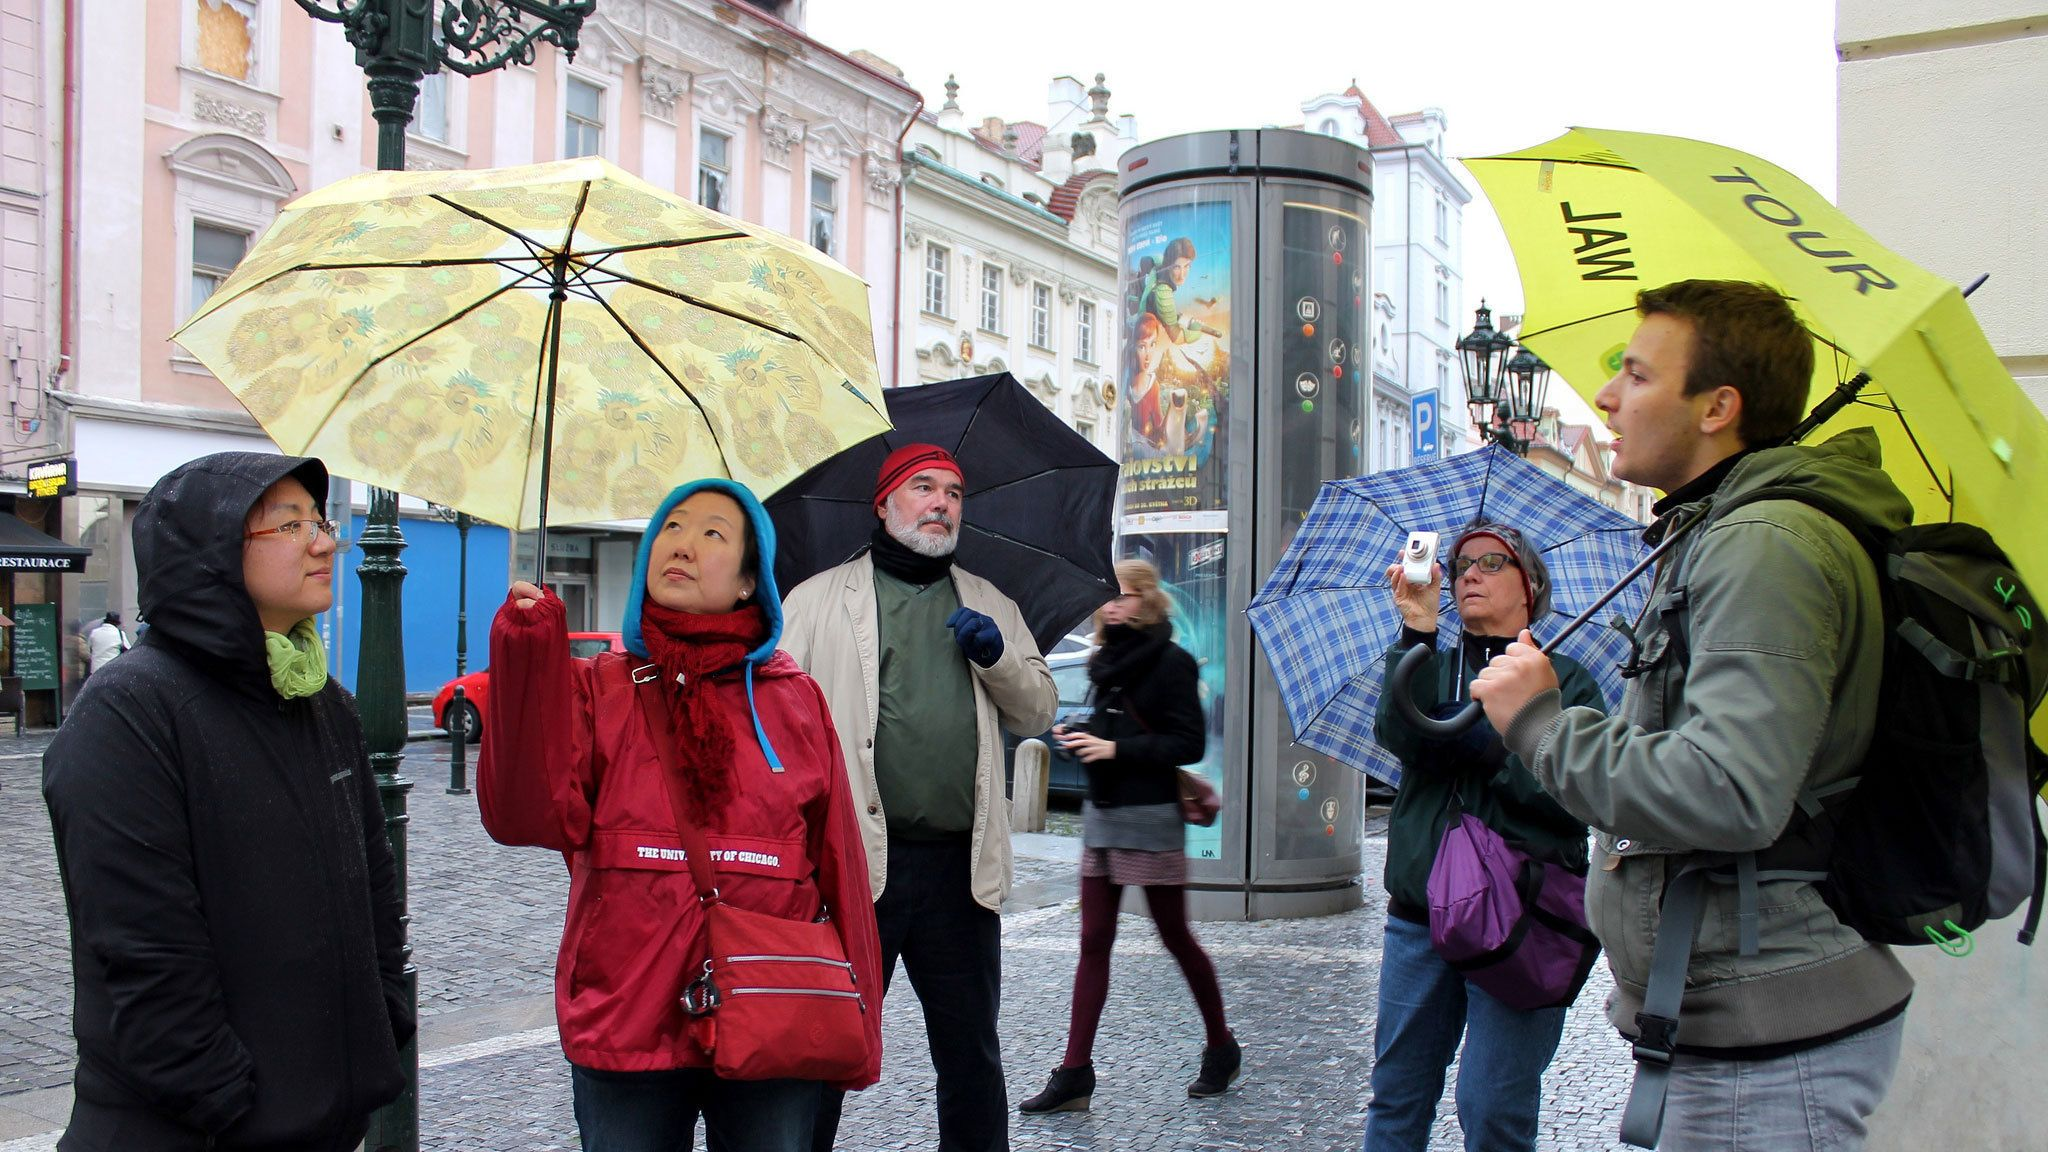 Tour group and guide with umbrellas on the street in Prague